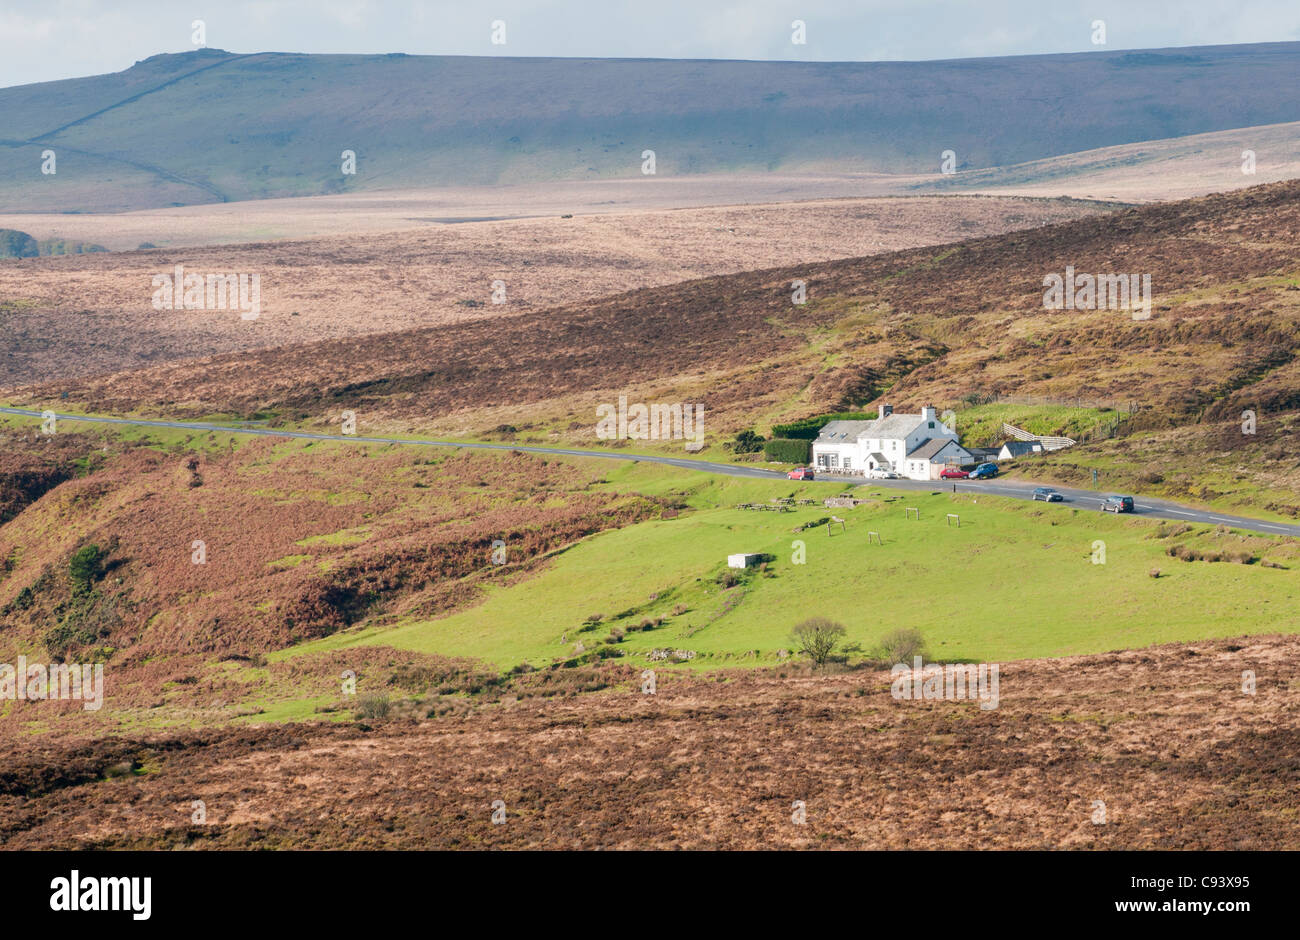 Warren House Inn near Postbridge, in the middle of Dartmoor, Devon UK - Stock Image